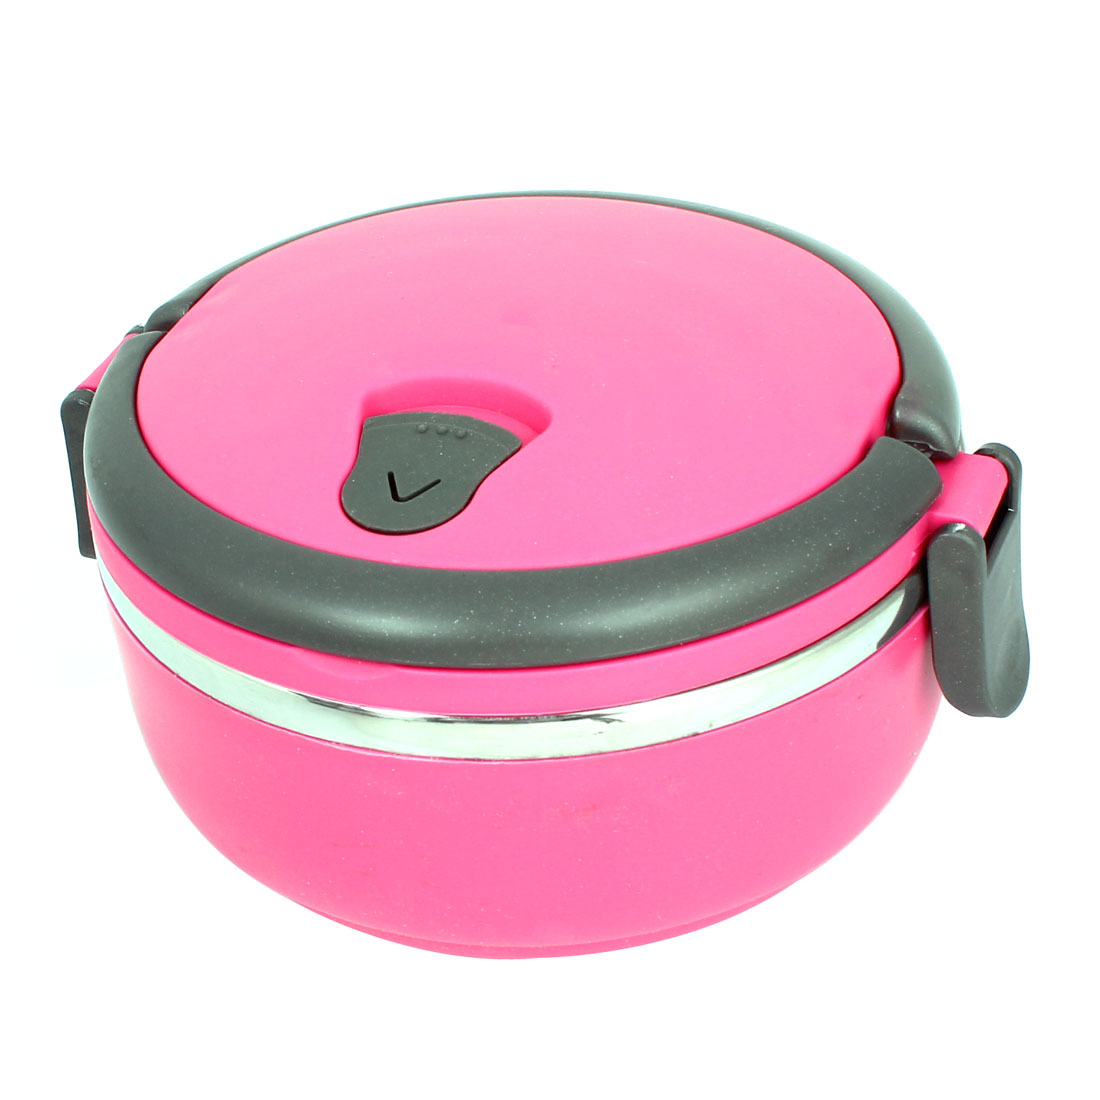 Fuchsia Round Shape Stainless Steel Thermal Insulated Lunch Box Food Container